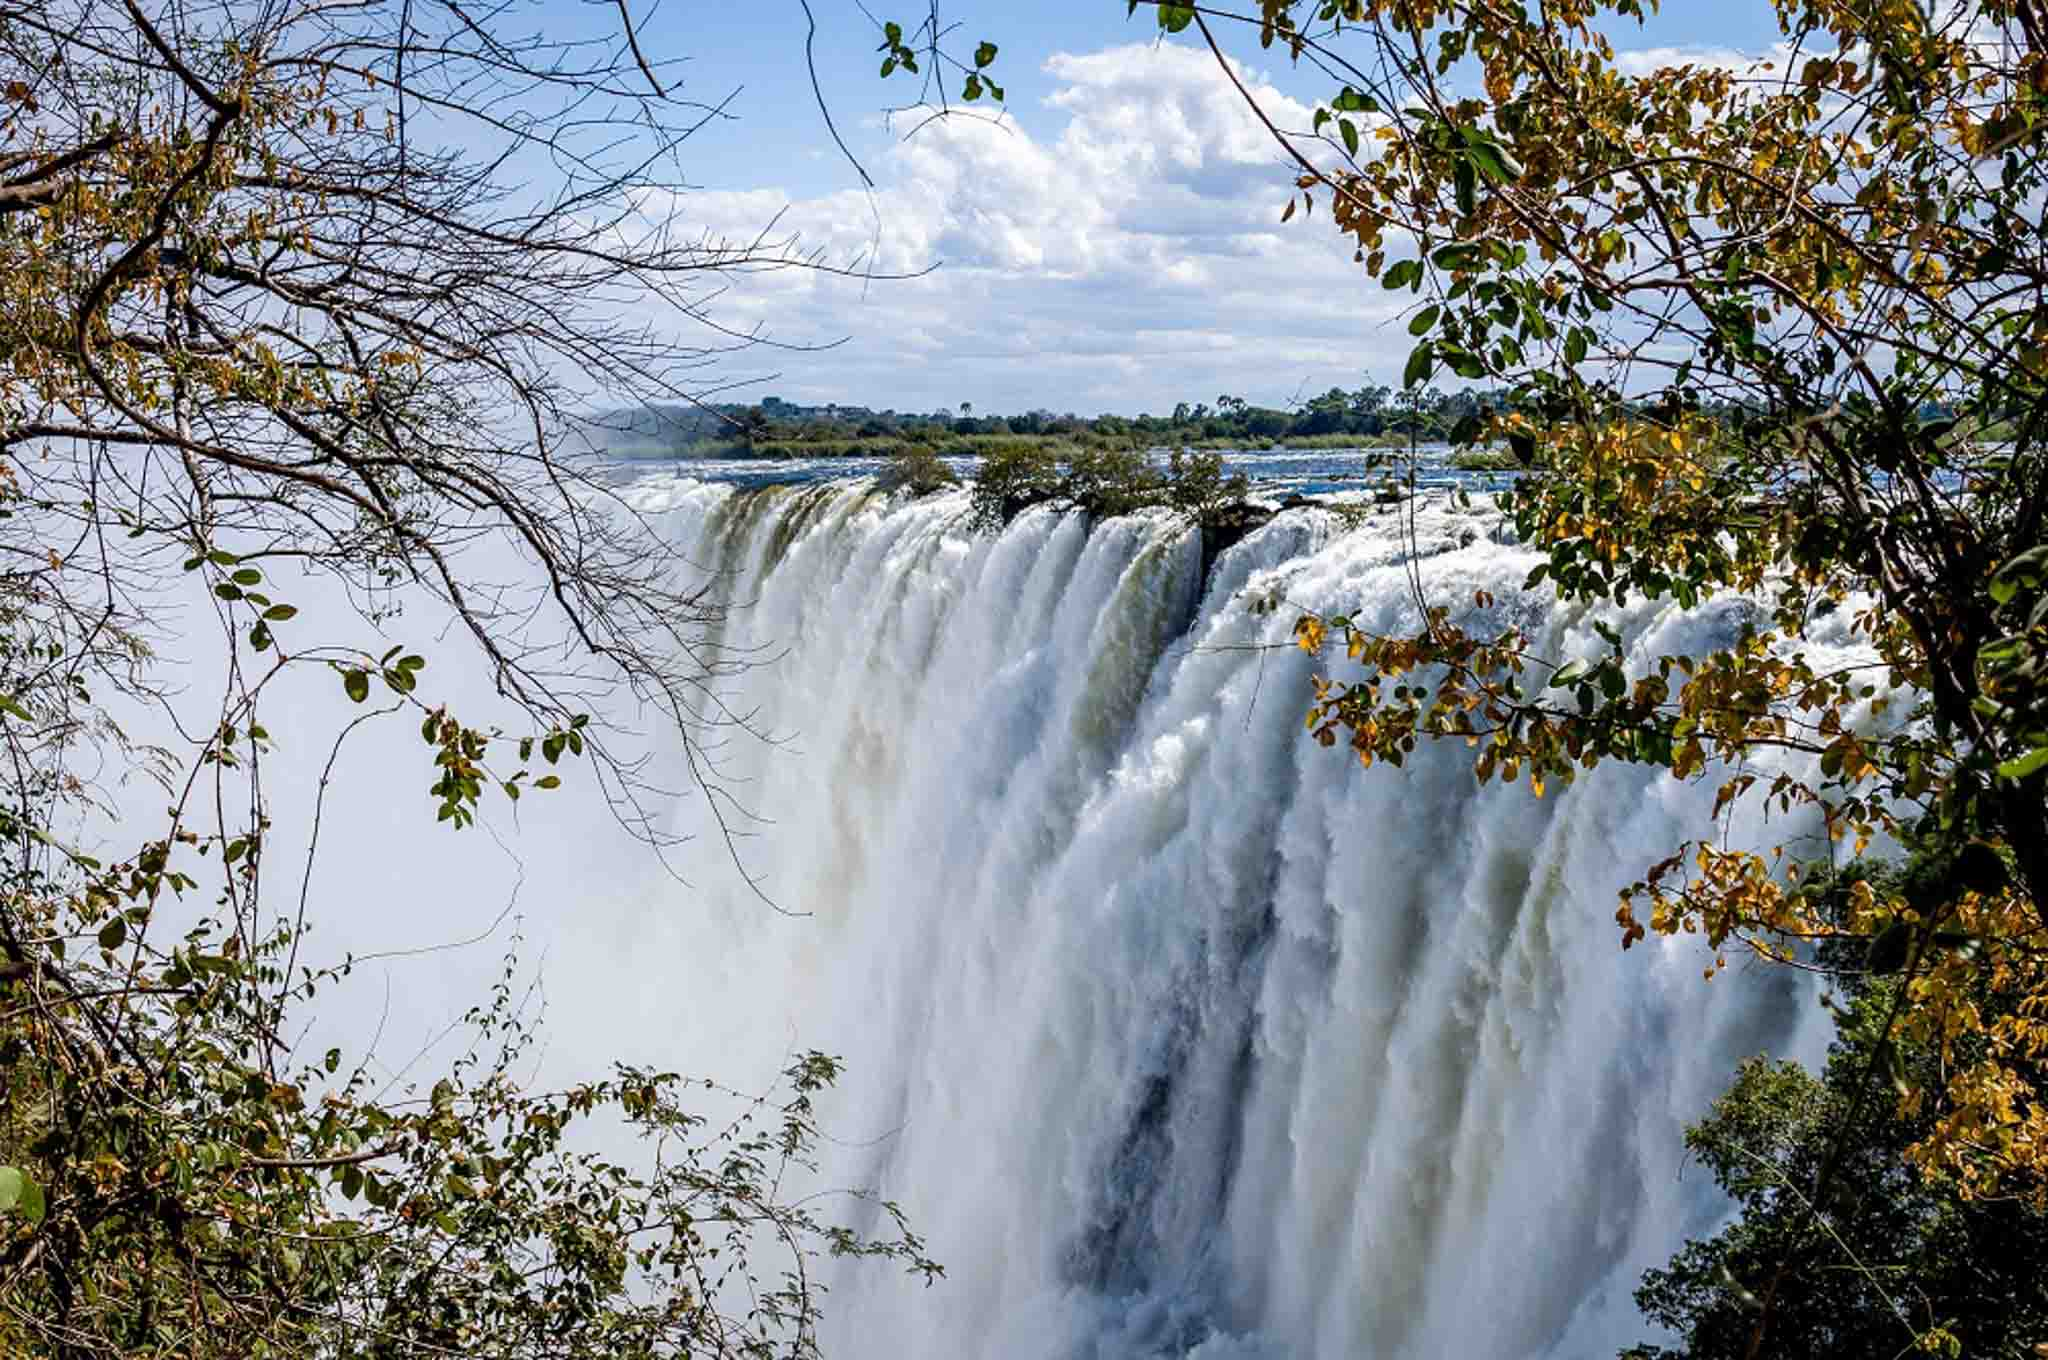 Huge water flow at Victoria Falls in Zambia